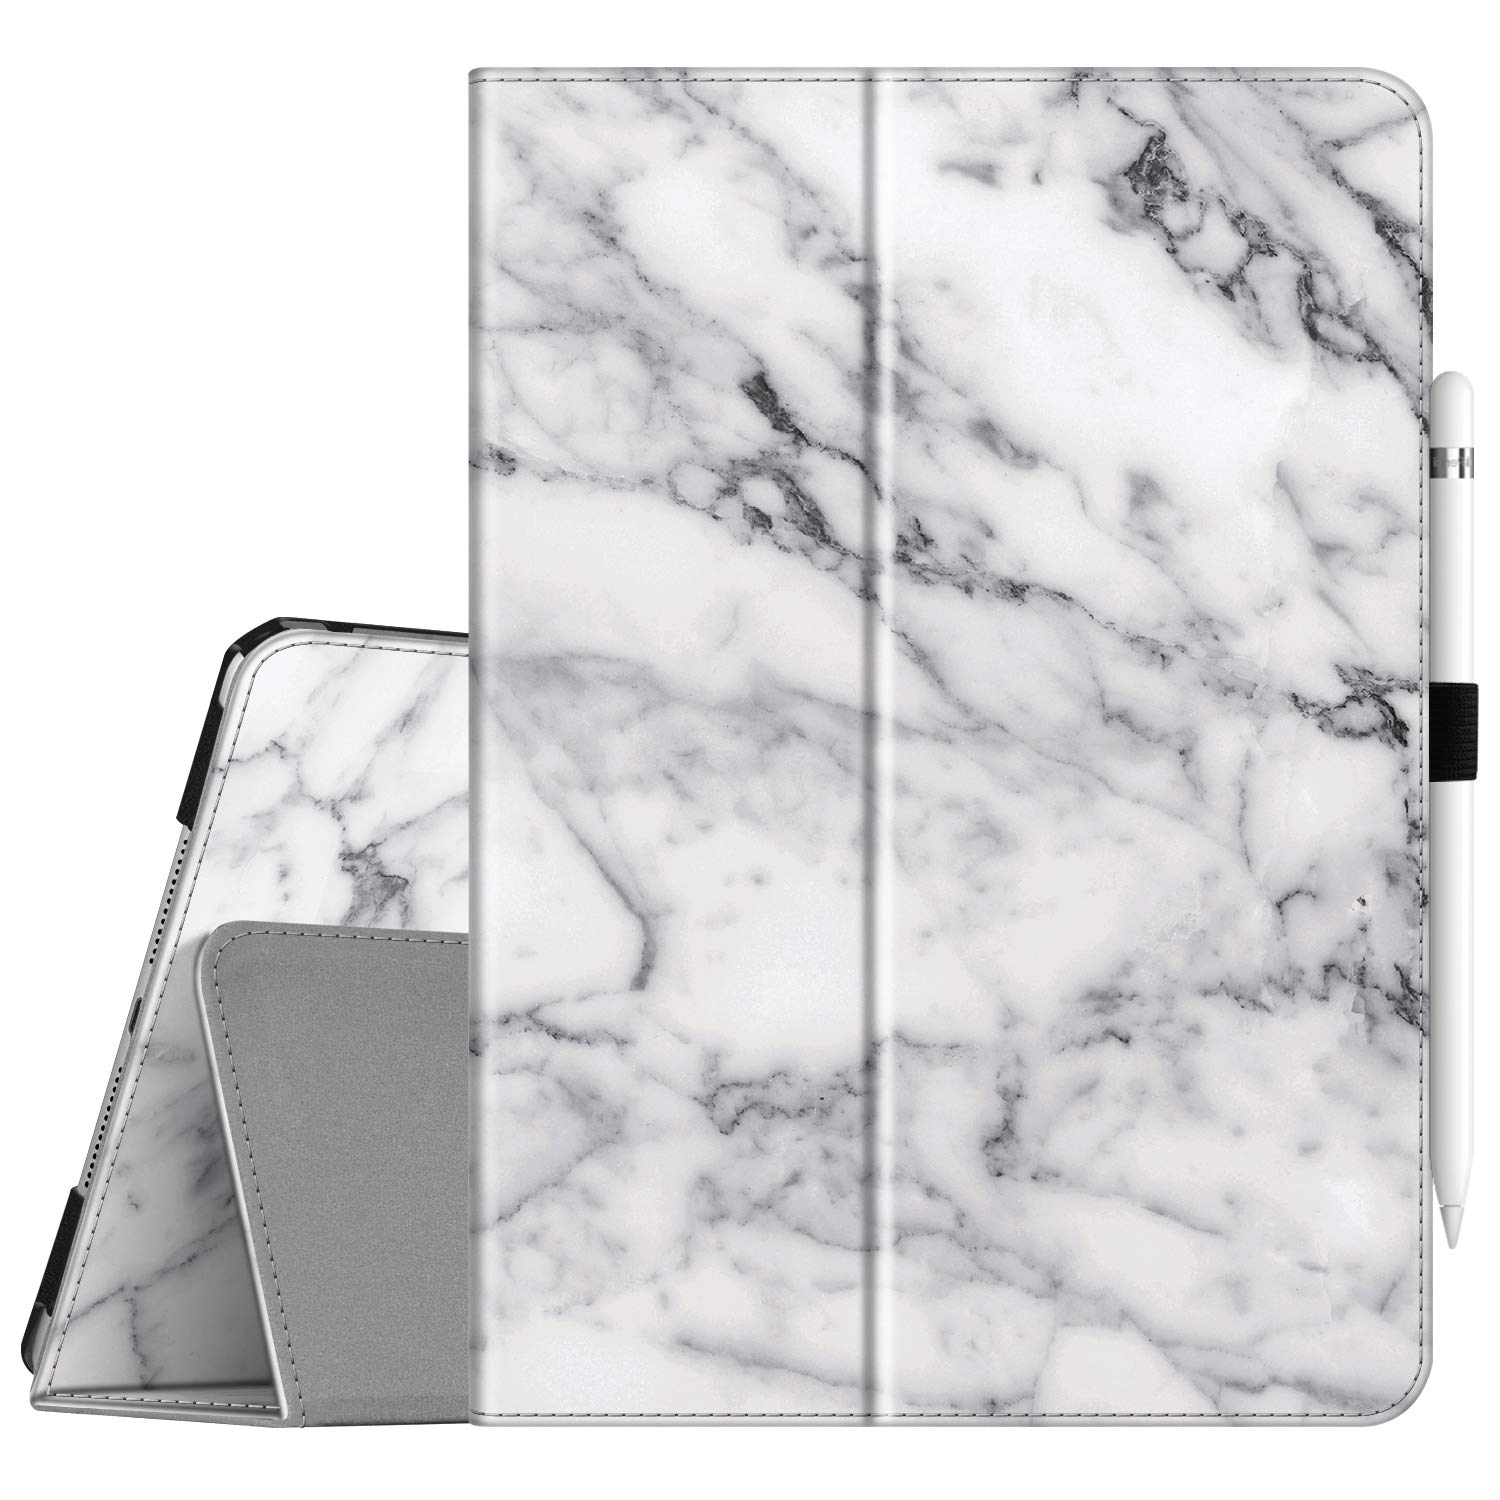 """Fintie Folio Case for New iPad 7th Generation 10.2 Inch 2019 - [Corner Protection] Premium Vegan Leather Smart Stand Back Cover with Pencil Holder, Auto Sleep/Wake for iPad 10.2"""" Tablet, Marble White"""